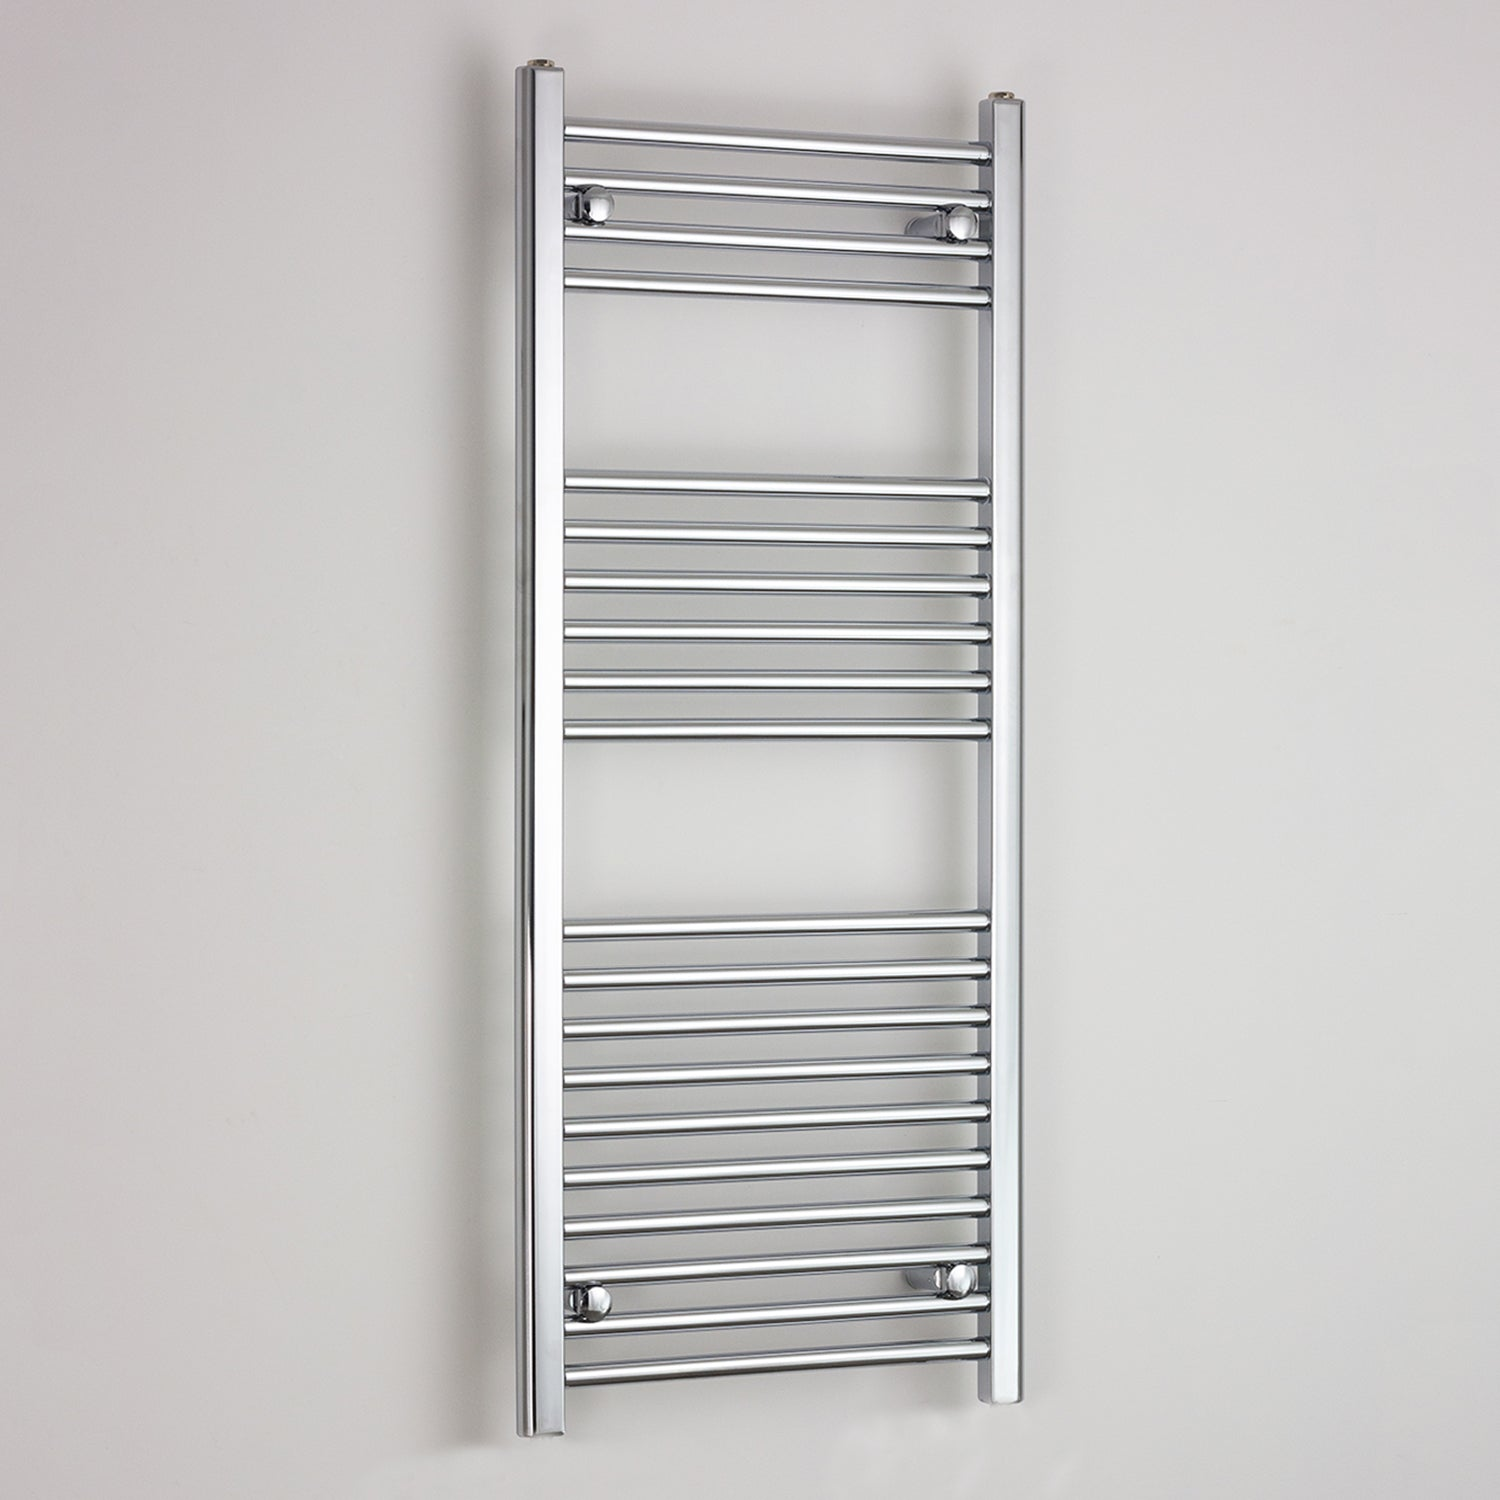 500mm Wide 1200mm High Flat Chrome Heated Towel Rail Radiator HTR,Towel Rail Only